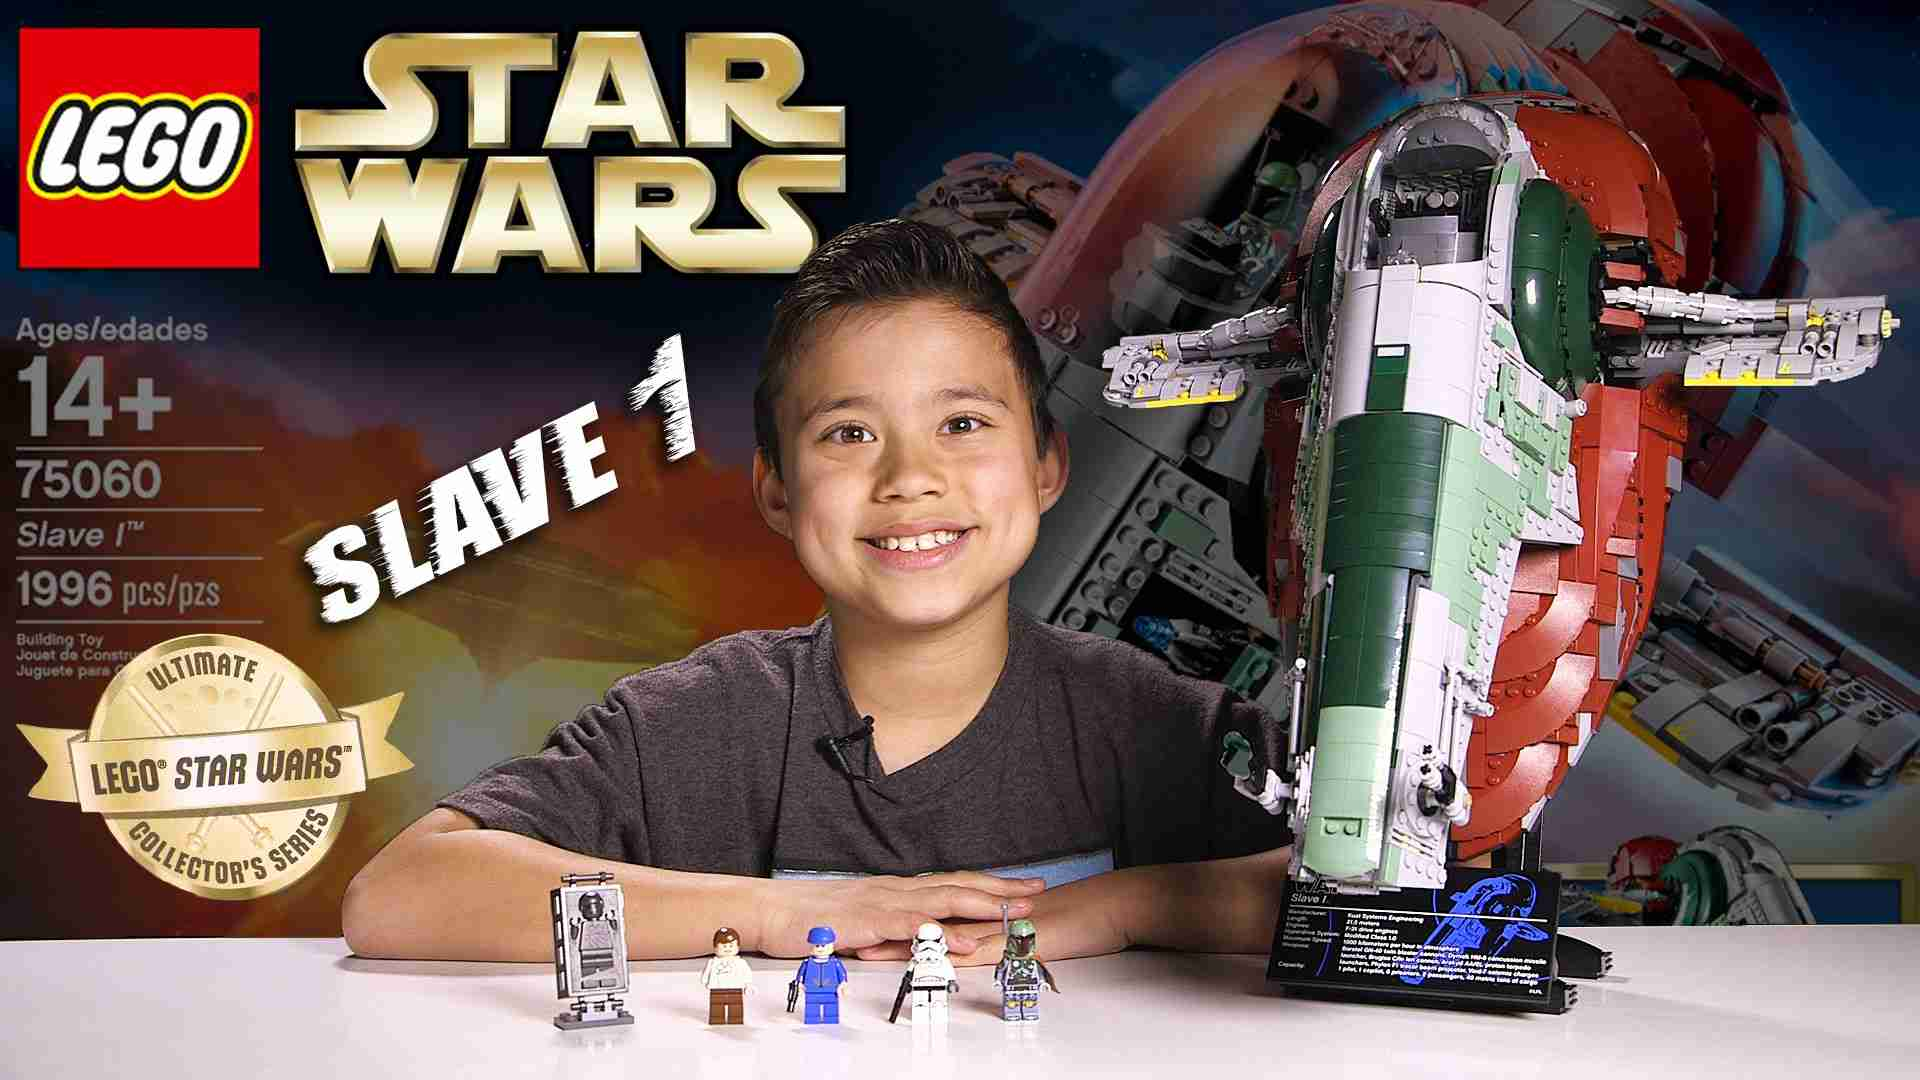 LEGO SLAVE 1 - LEGO Star Wars UCS Set 75060 Time-lapse, Stop Motion, Unboxing & Review - YouTube